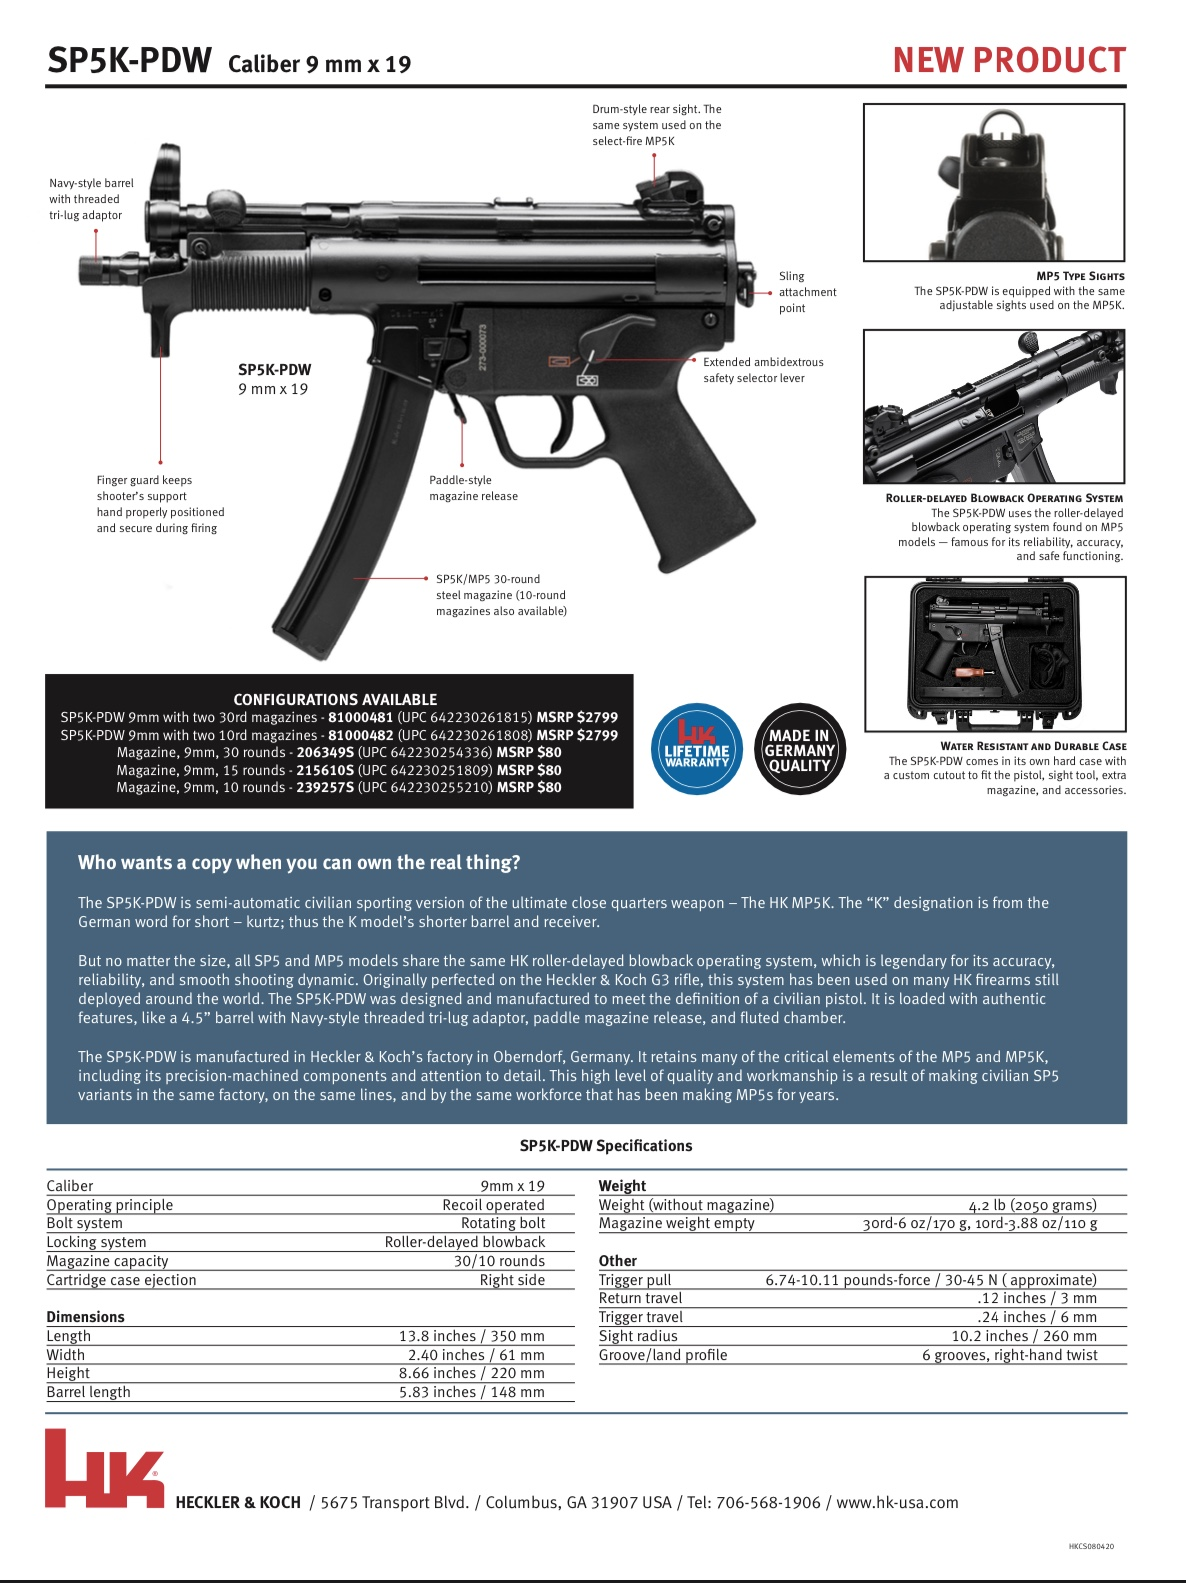 The SP5K-PDW IS REALITY!!!-img_4398.jpg